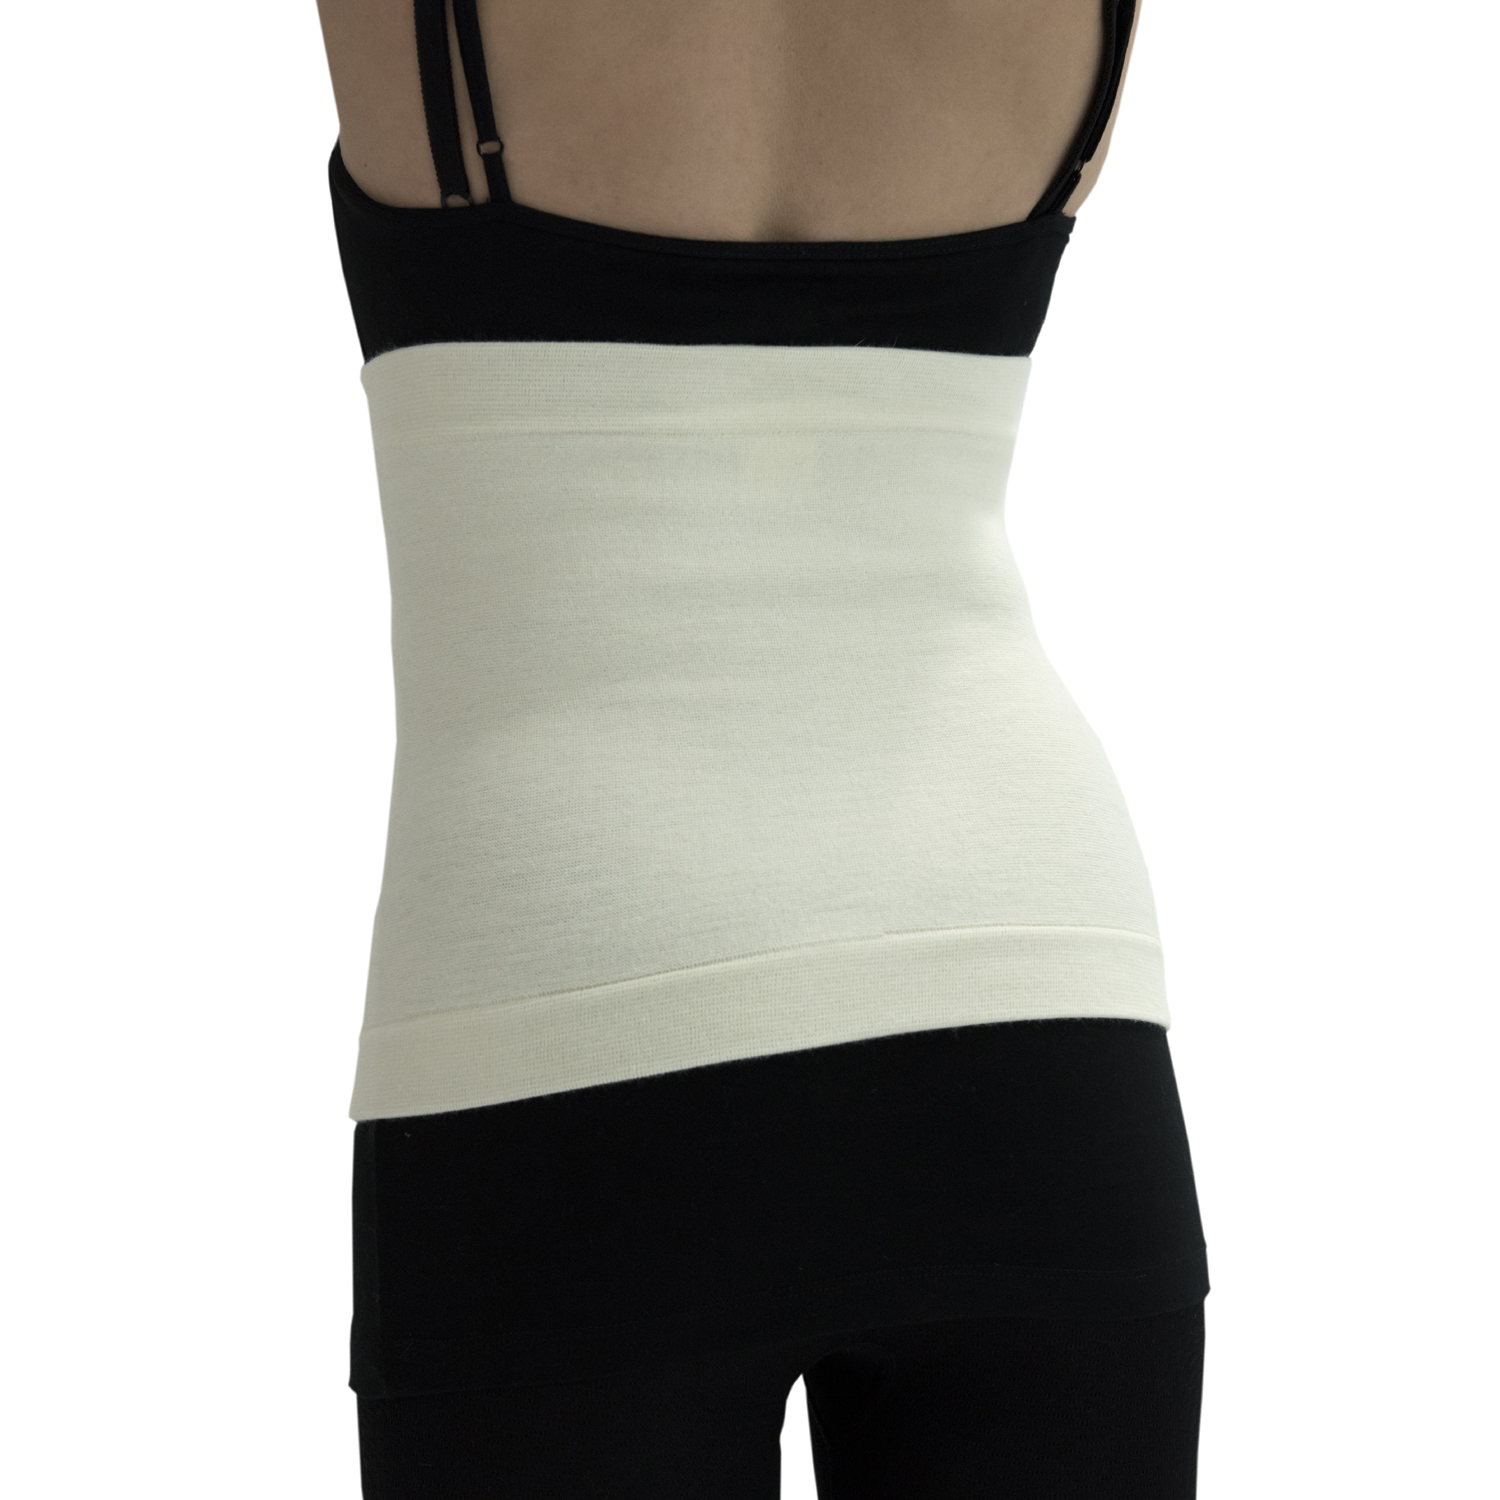 ITA-MED Style AGS-501 Abdominal Warming Support Binder (30% Angora)